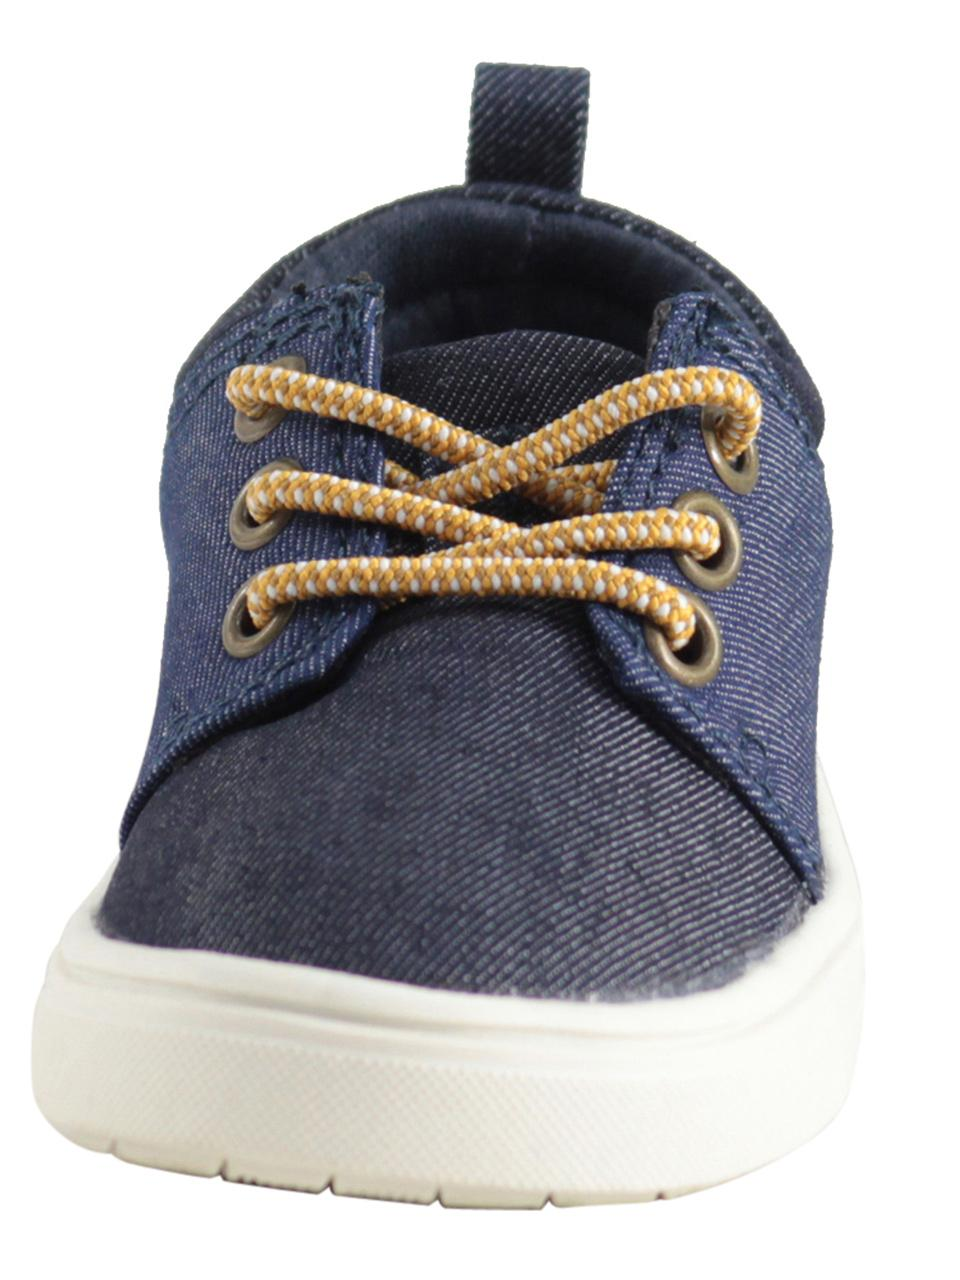 Carter/'s Little Boy/'s Limeri2 Brown Sneakers Shoes